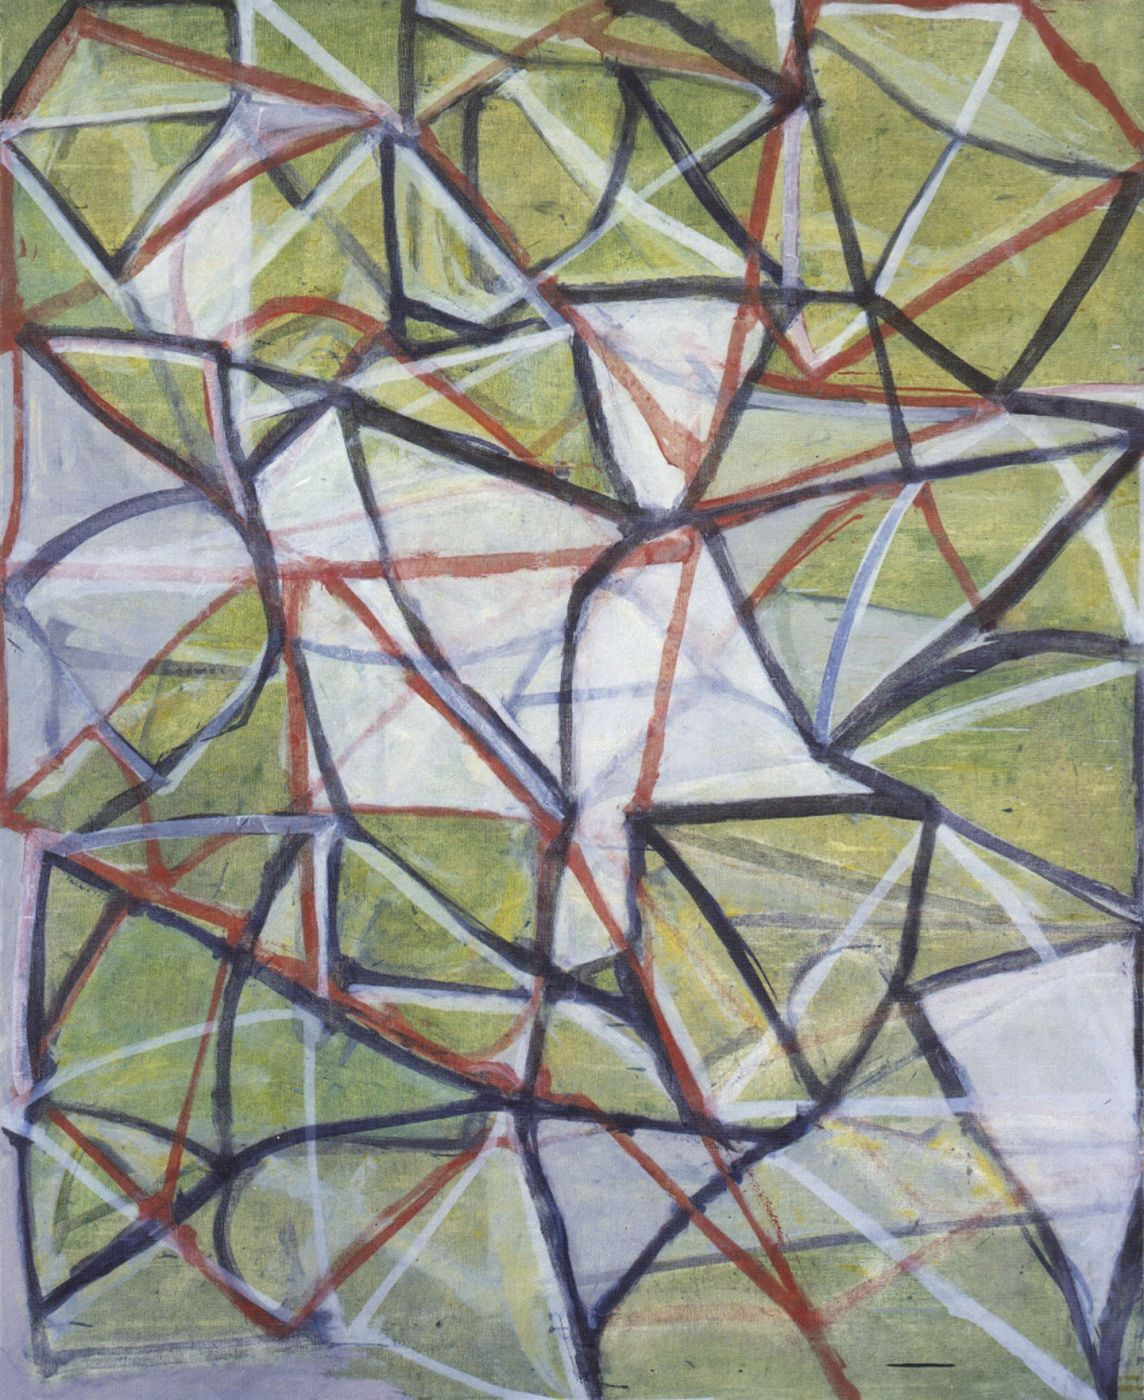 Plane Image: A Brice Marden Retrospective (MoMA, New York) [SIGNED]